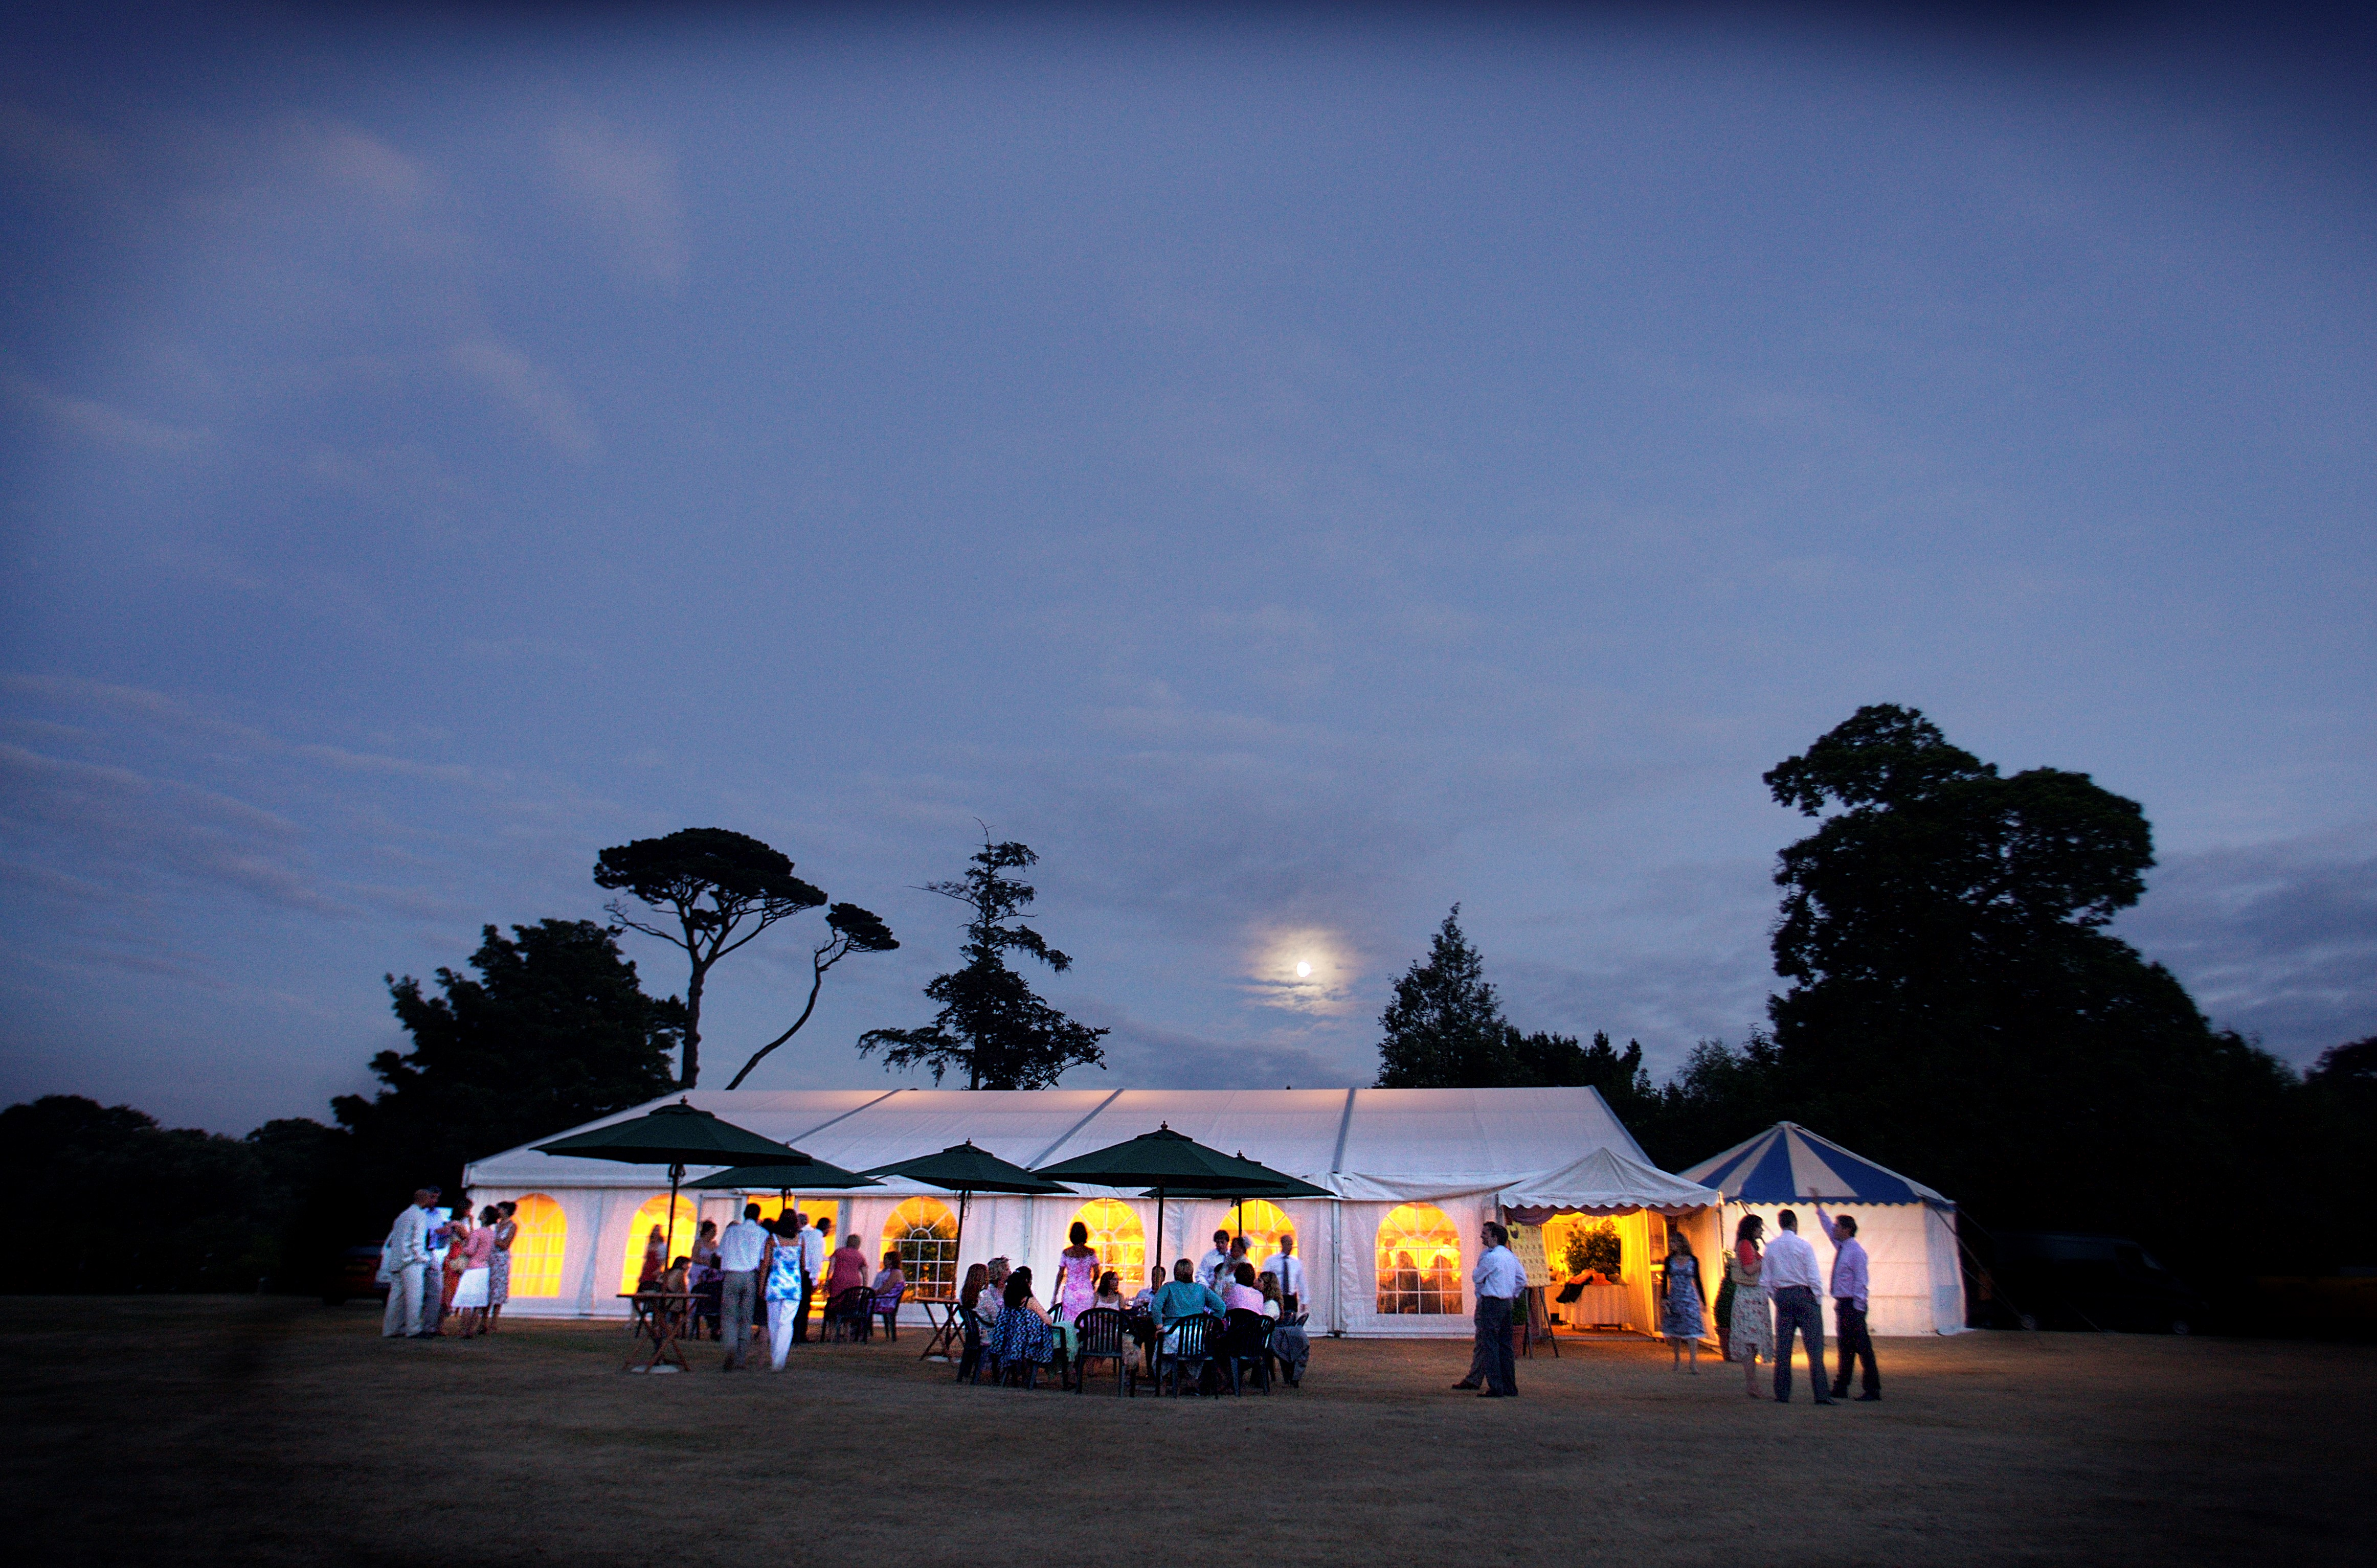 St Georges marquee nightime photo.jpg